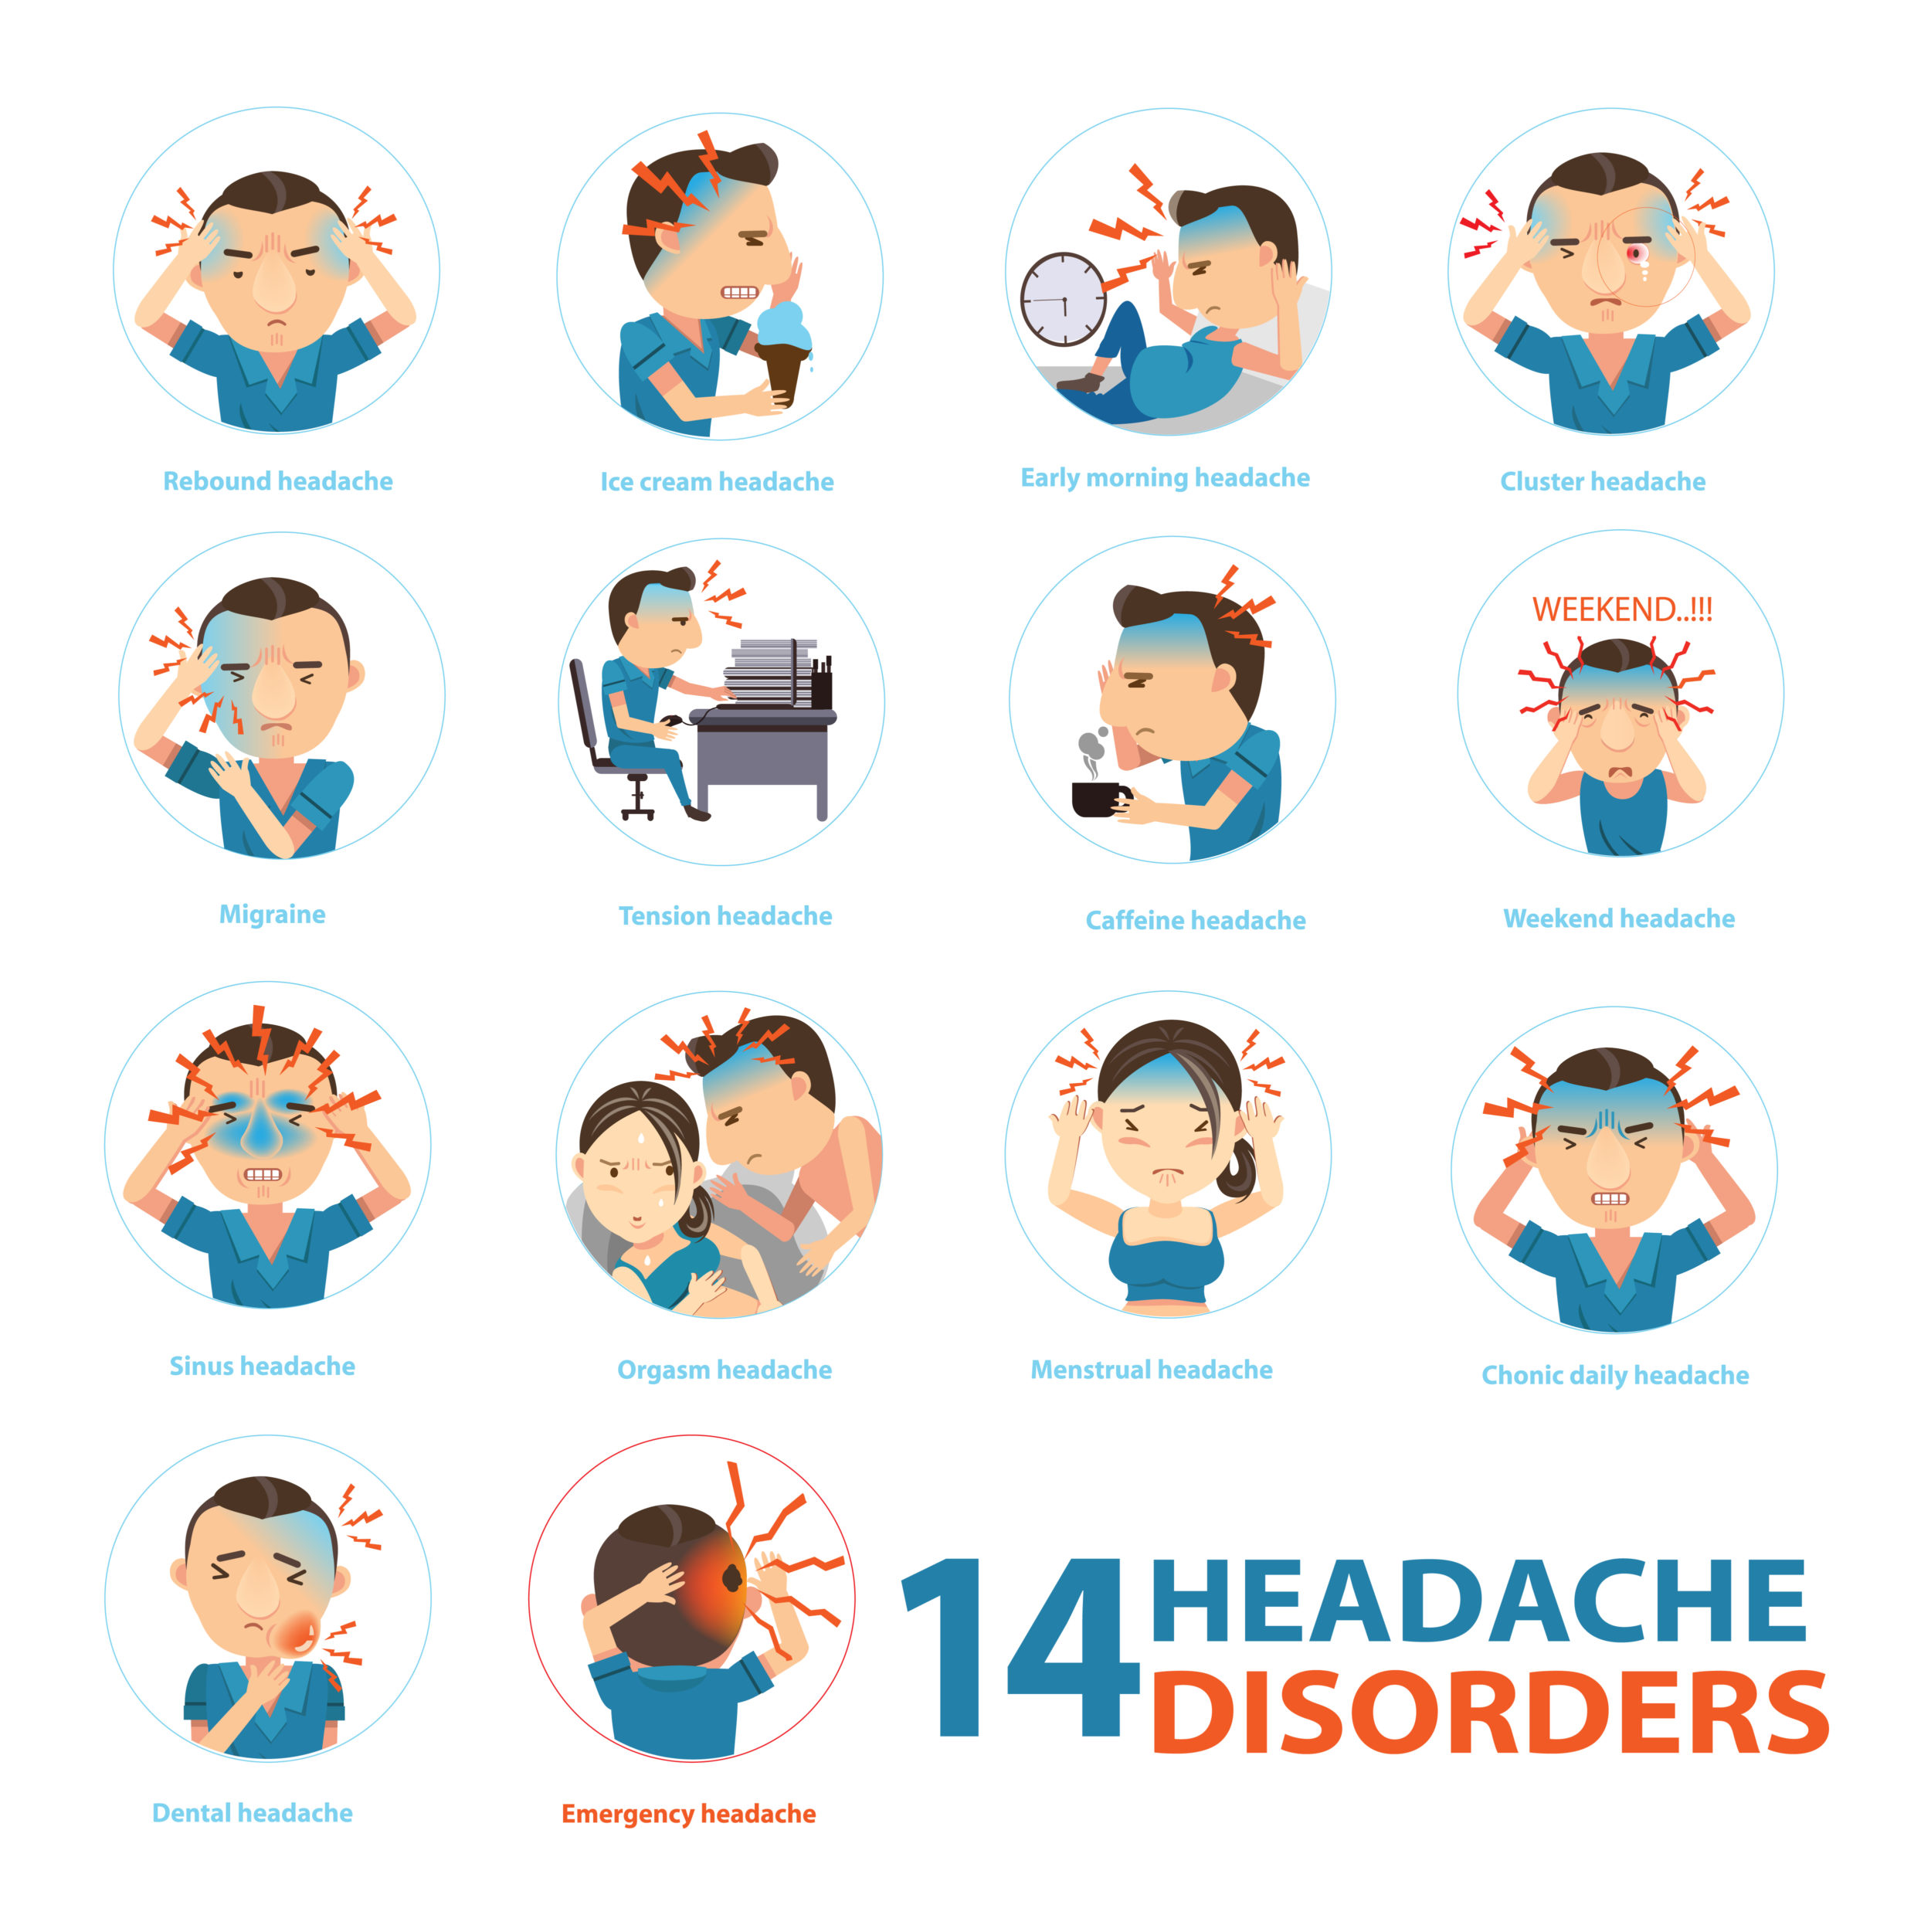 14 headache disorders. Which one do you have?